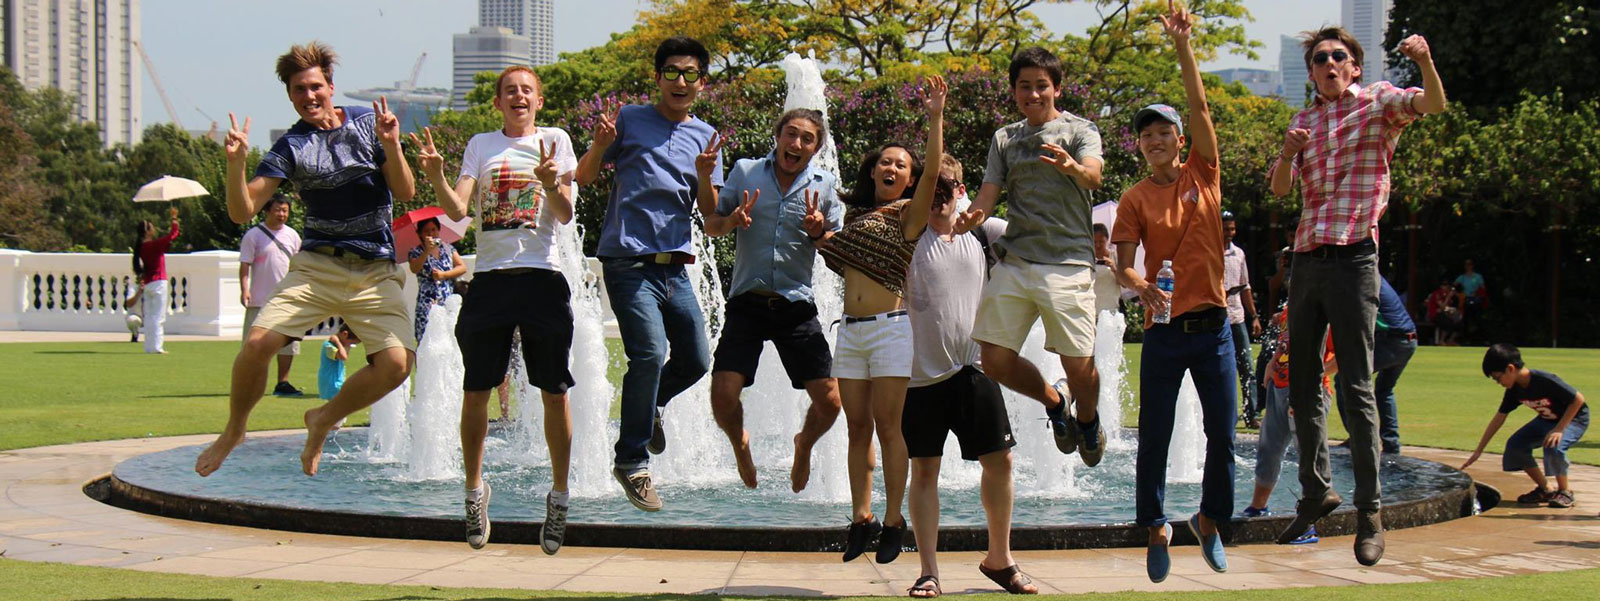 students jumping in front of fountain